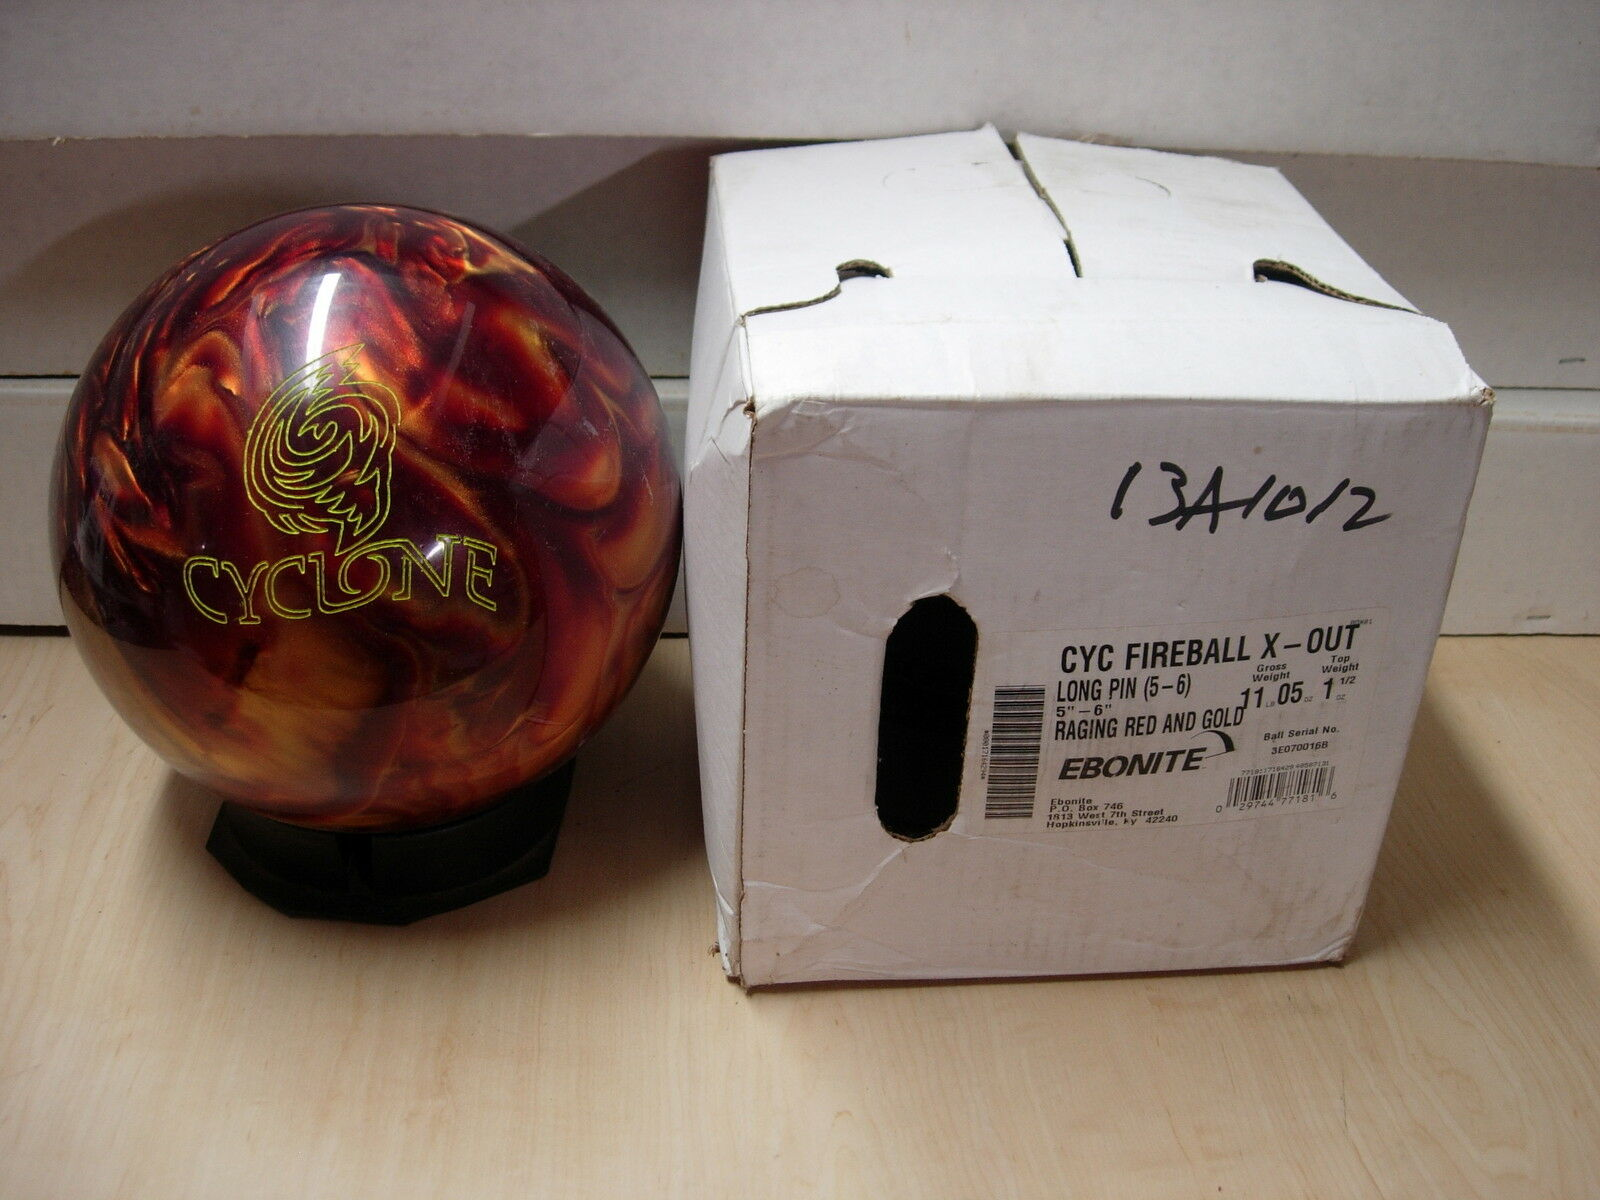 11oz x-out Pin 5-6  Ebonite CYCLONE Raging Red gold NIB for Dr. Frankenstein